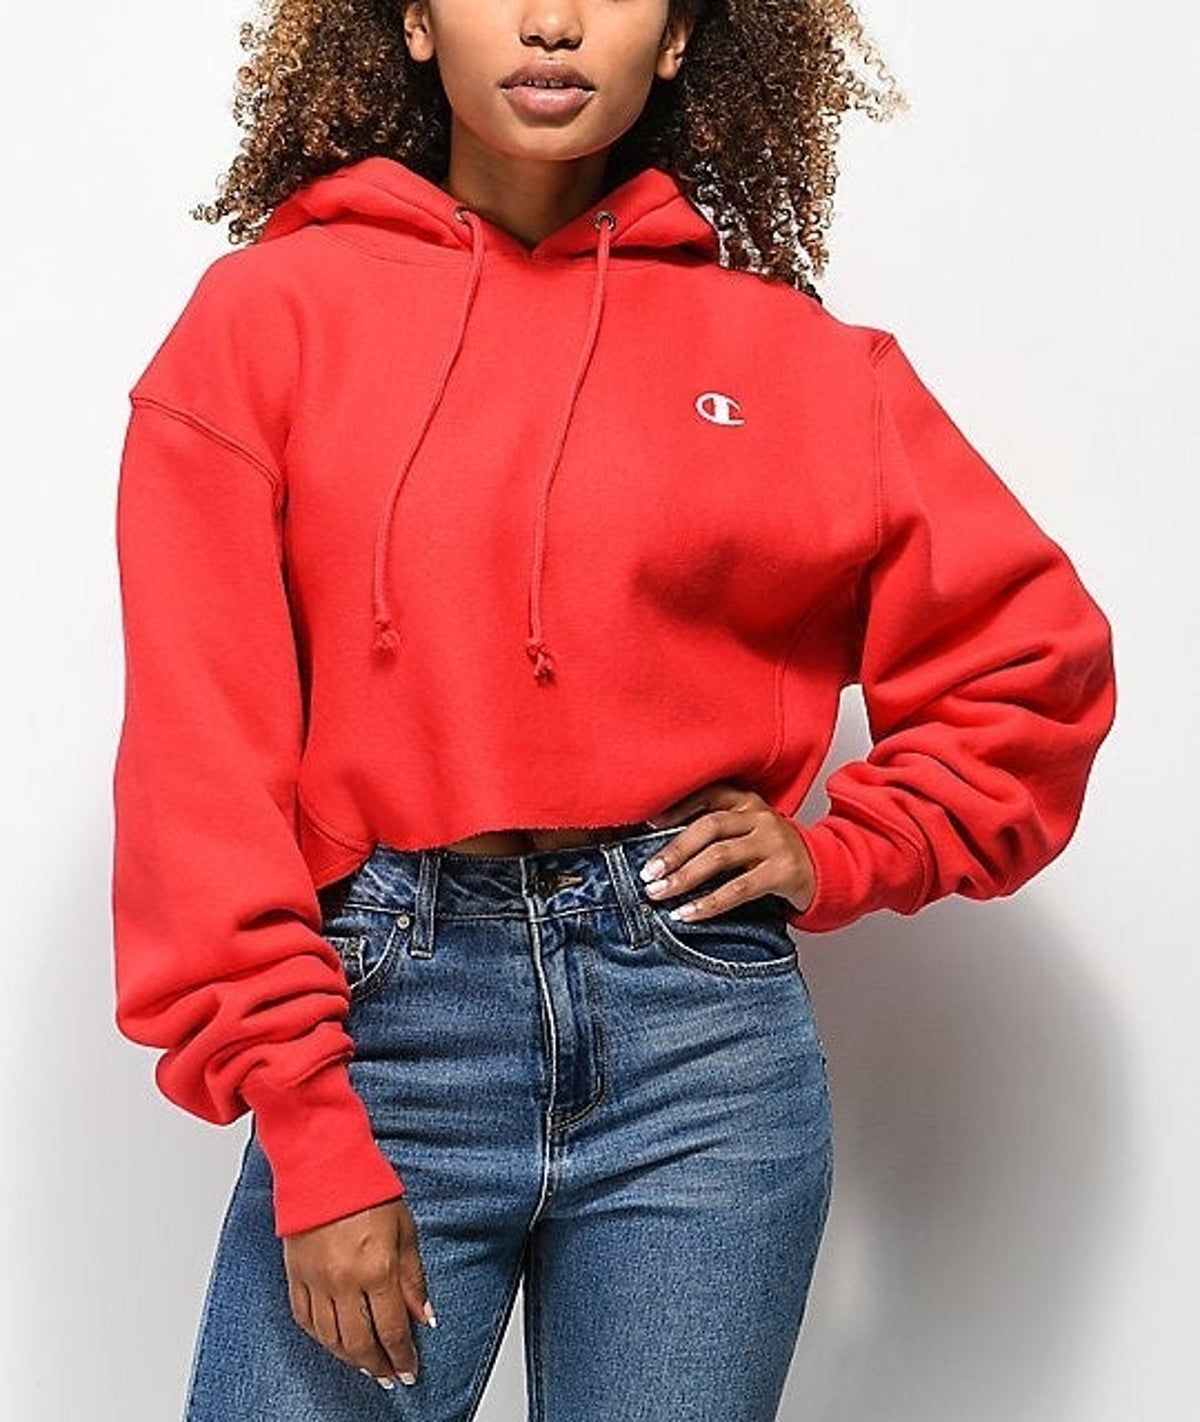 Nwt Champion Cropped Hoodie Red Hoodie Outfit Cropped Hoodie Outfit Red Cropped Hoodie [ 1422 x 1200 Pixel ]